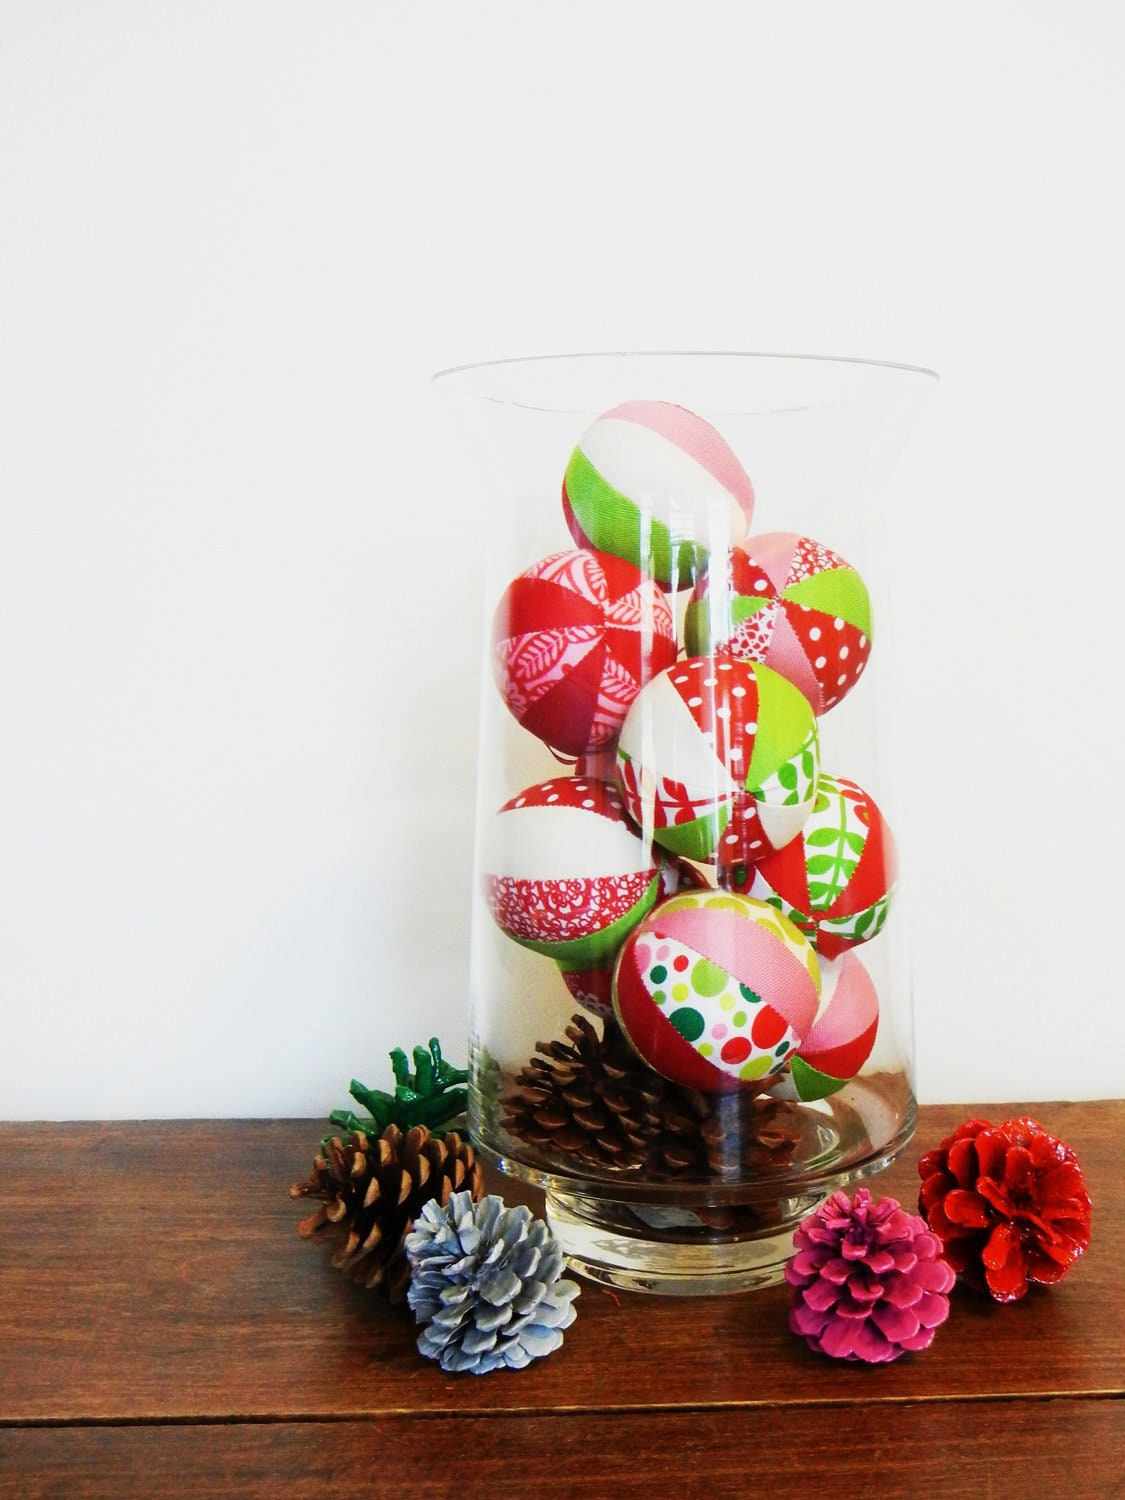 Set of 8 - Whimsical fabric Christmas balls - Home decor, table centerpiece, mantle - red, white, green, pink - Walkervilletextiles